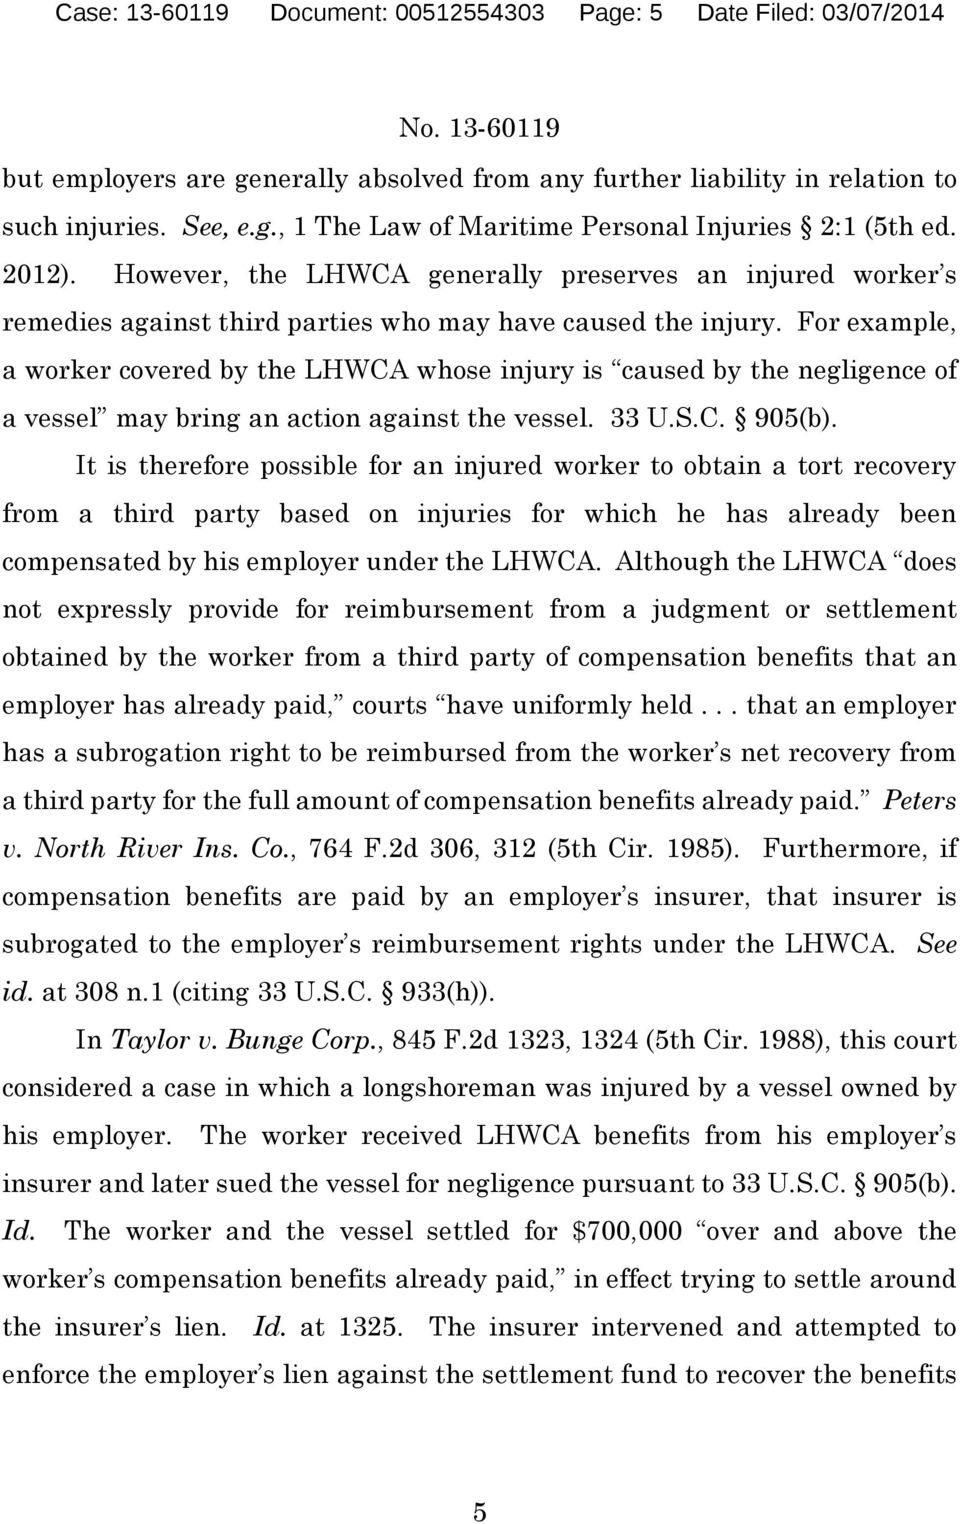 For example, a worker covered by the LHWCA whose injury is caused by the negligence of a vessel may bring an action against the vessel. 33 U.S.C. 905(b).